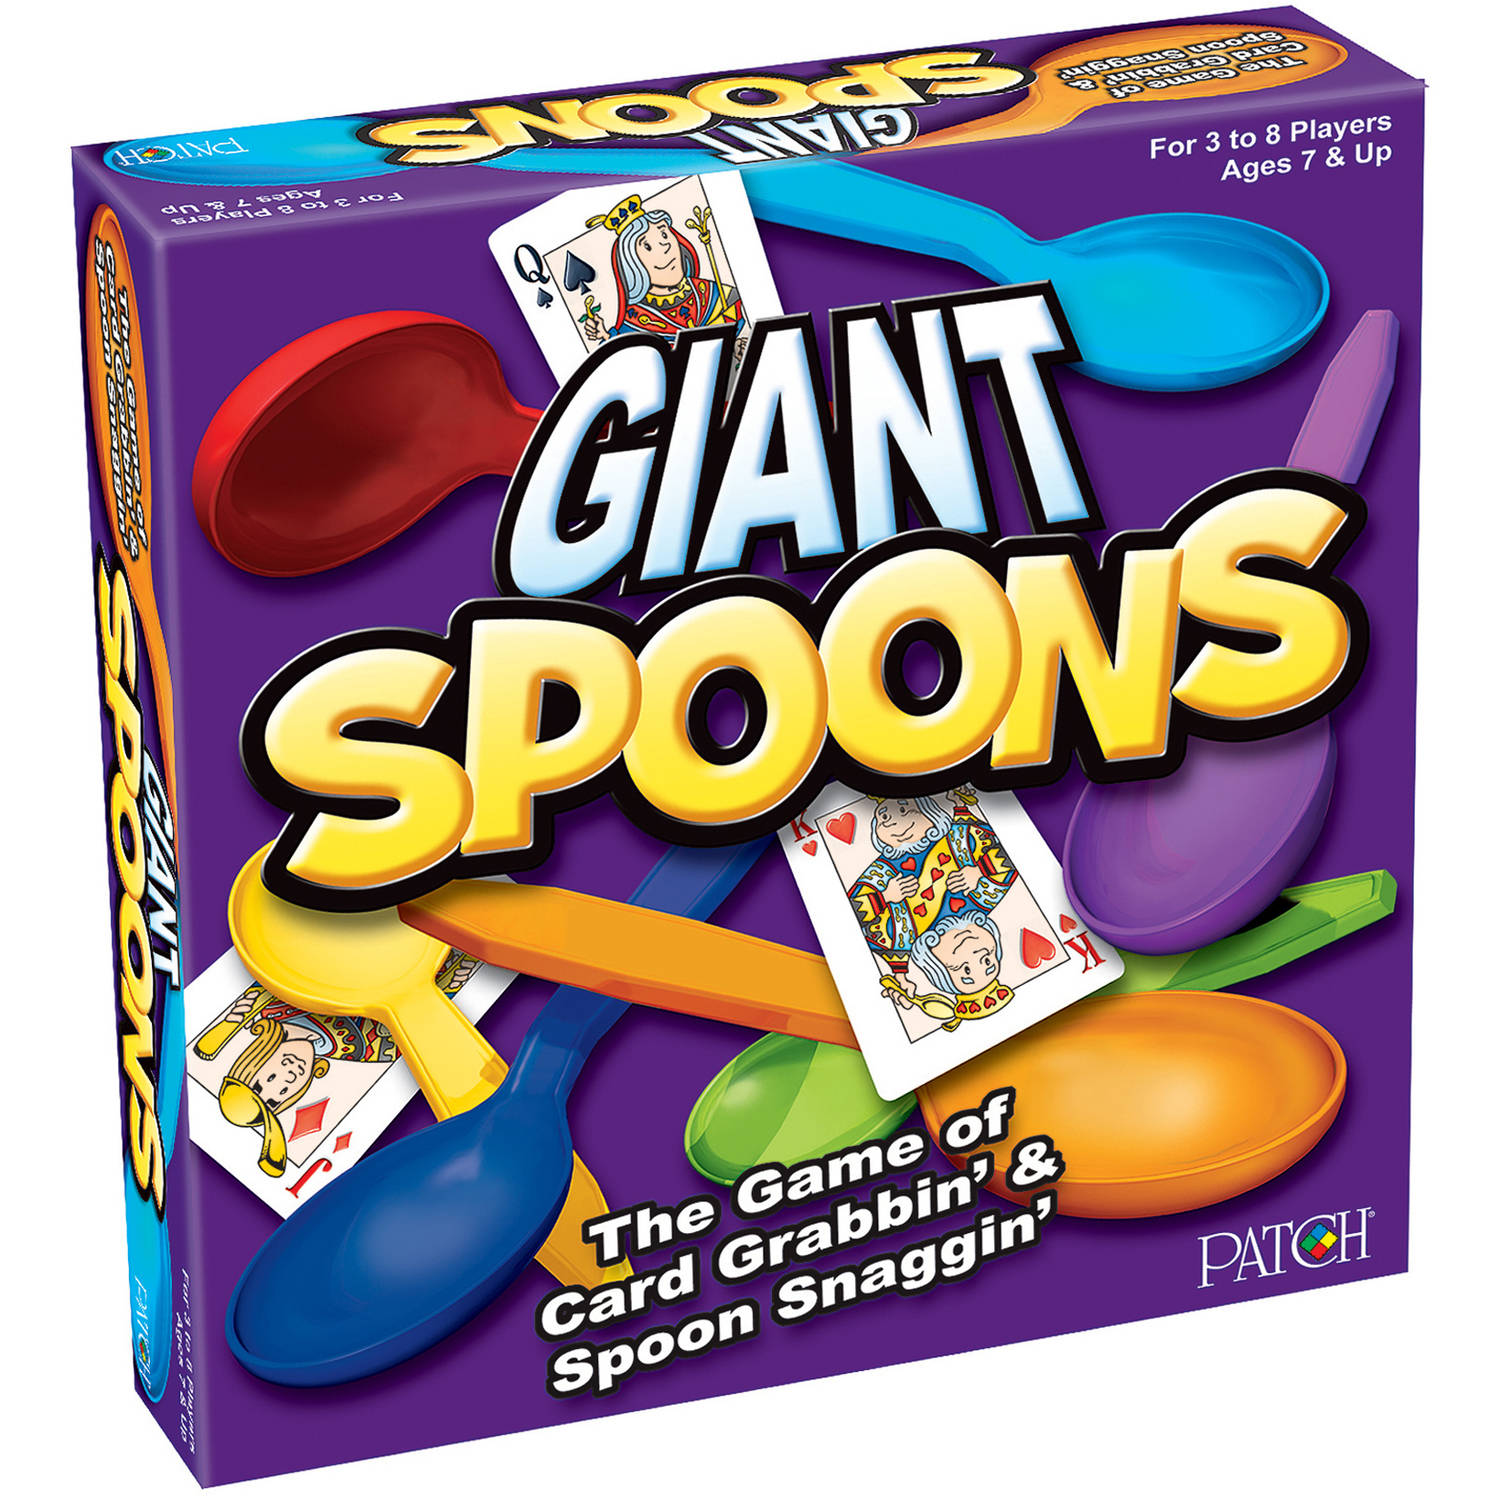 PATCH Giant Spoons Game